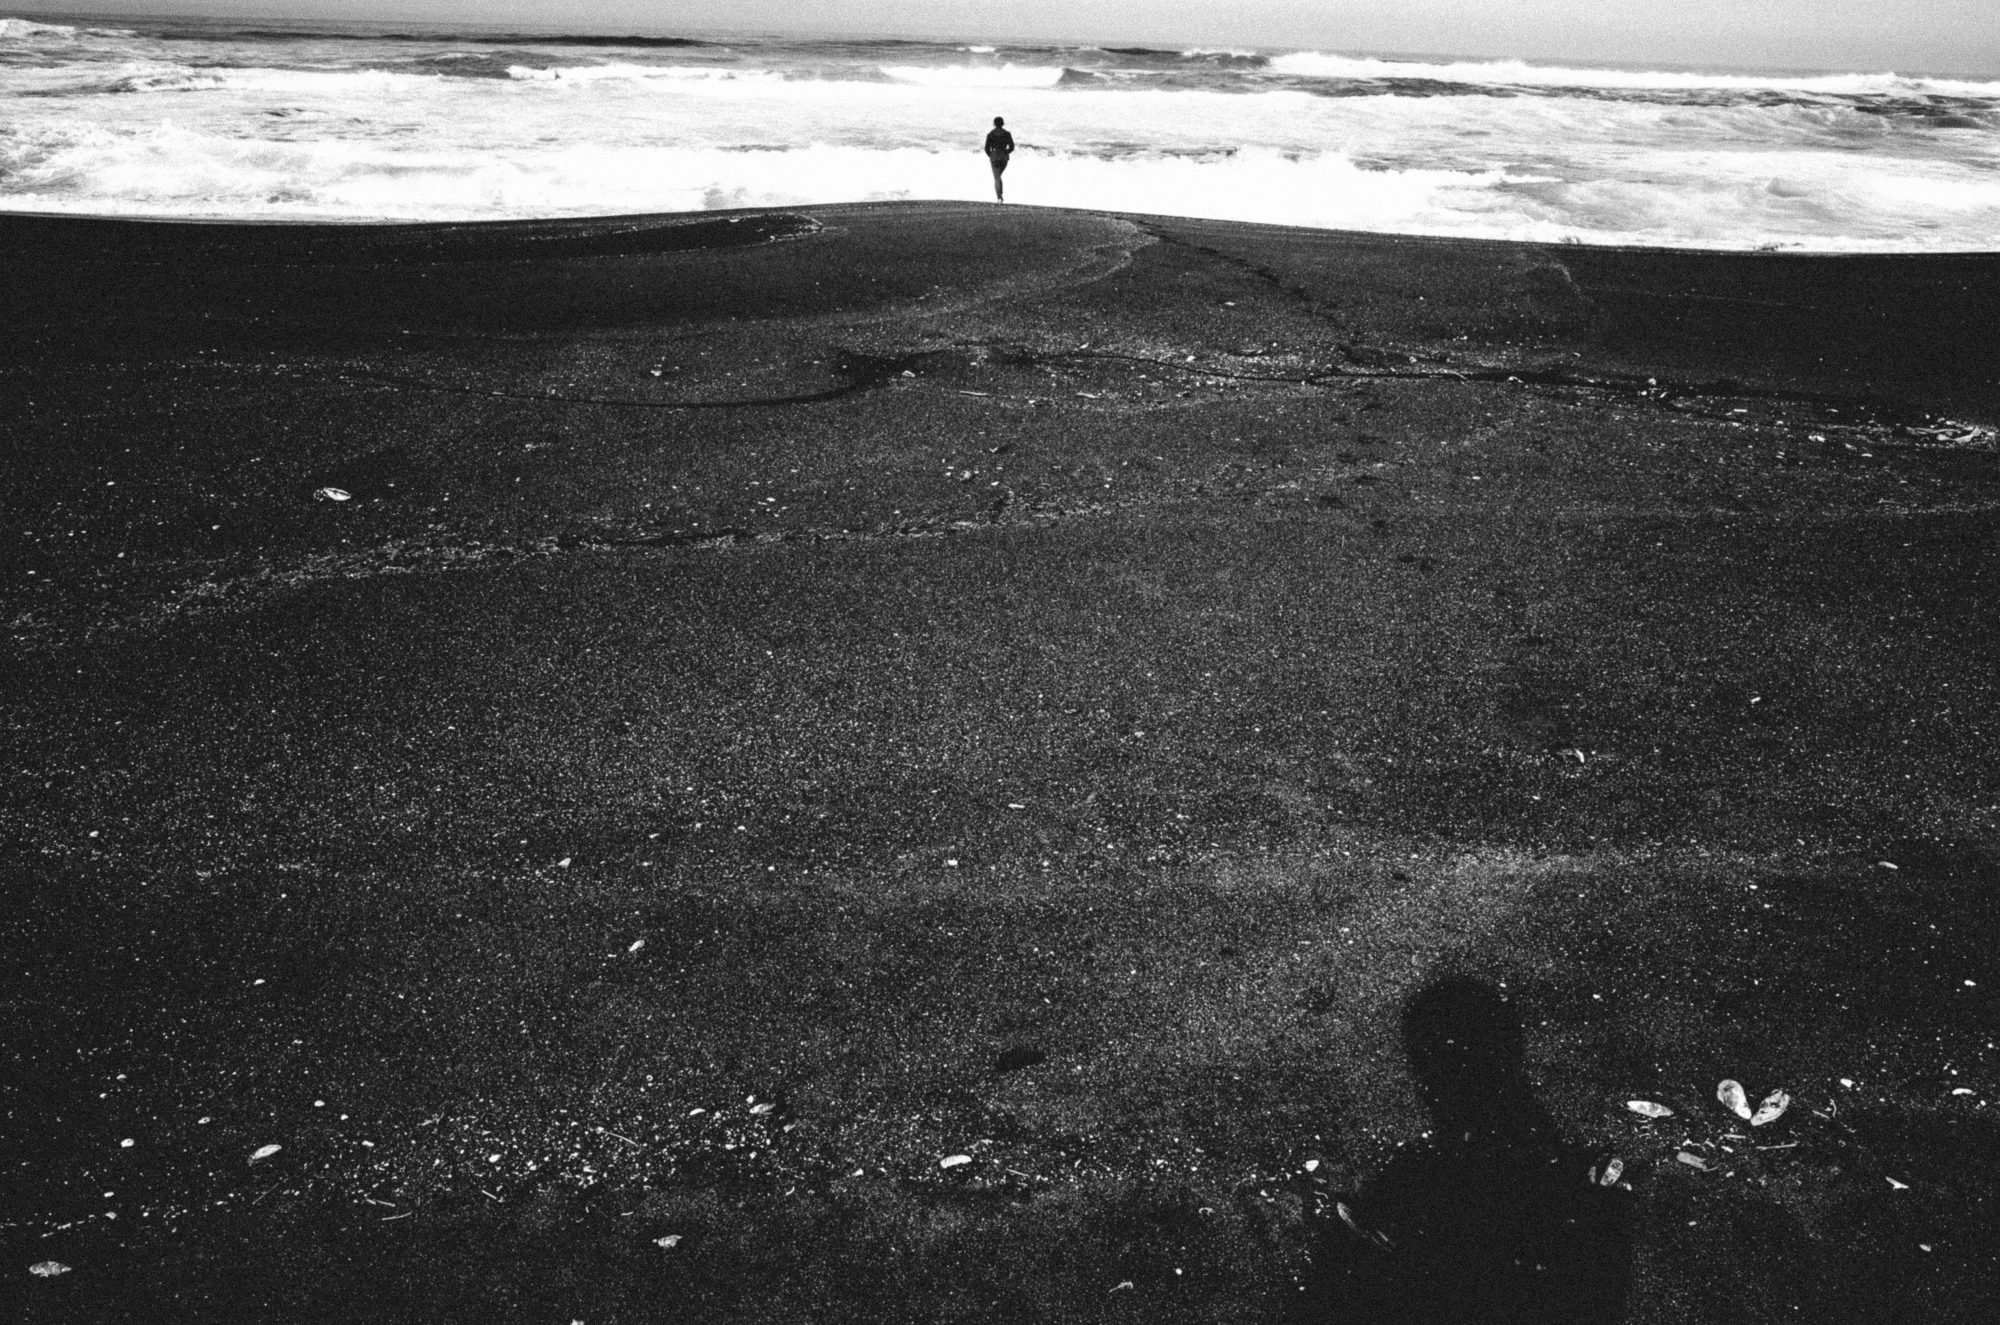 eric-kim-photography-cindy-project-black-and-white-10-beach-silhouette-water